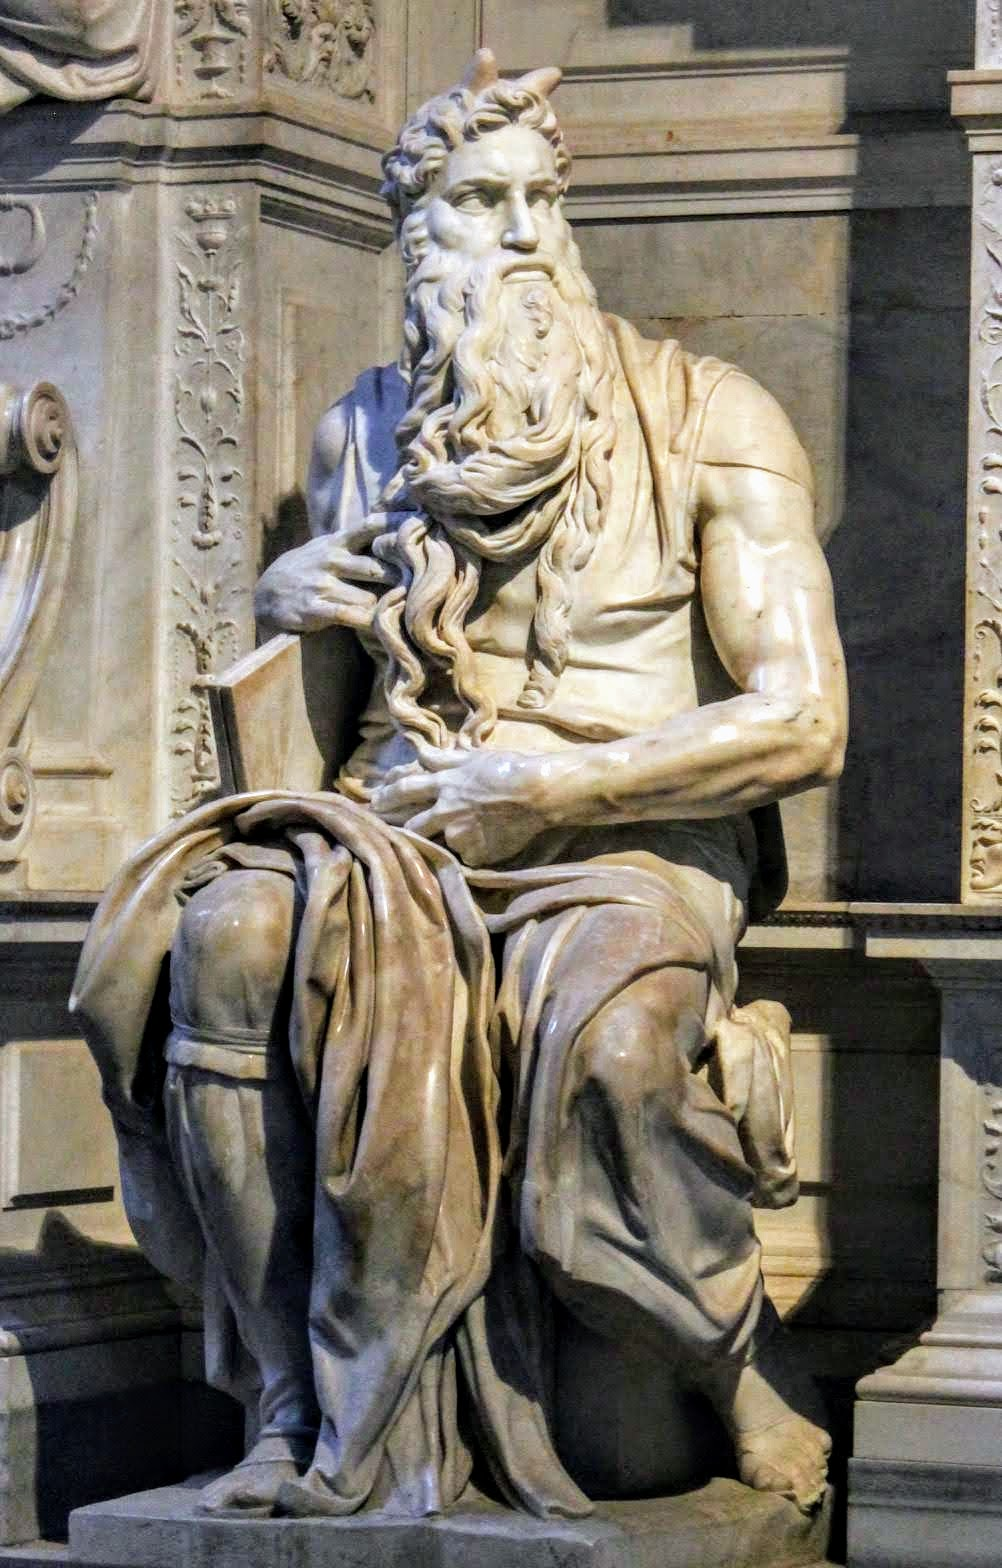 Moses by Michelangelo, San Pietro in Vincoli, Rome